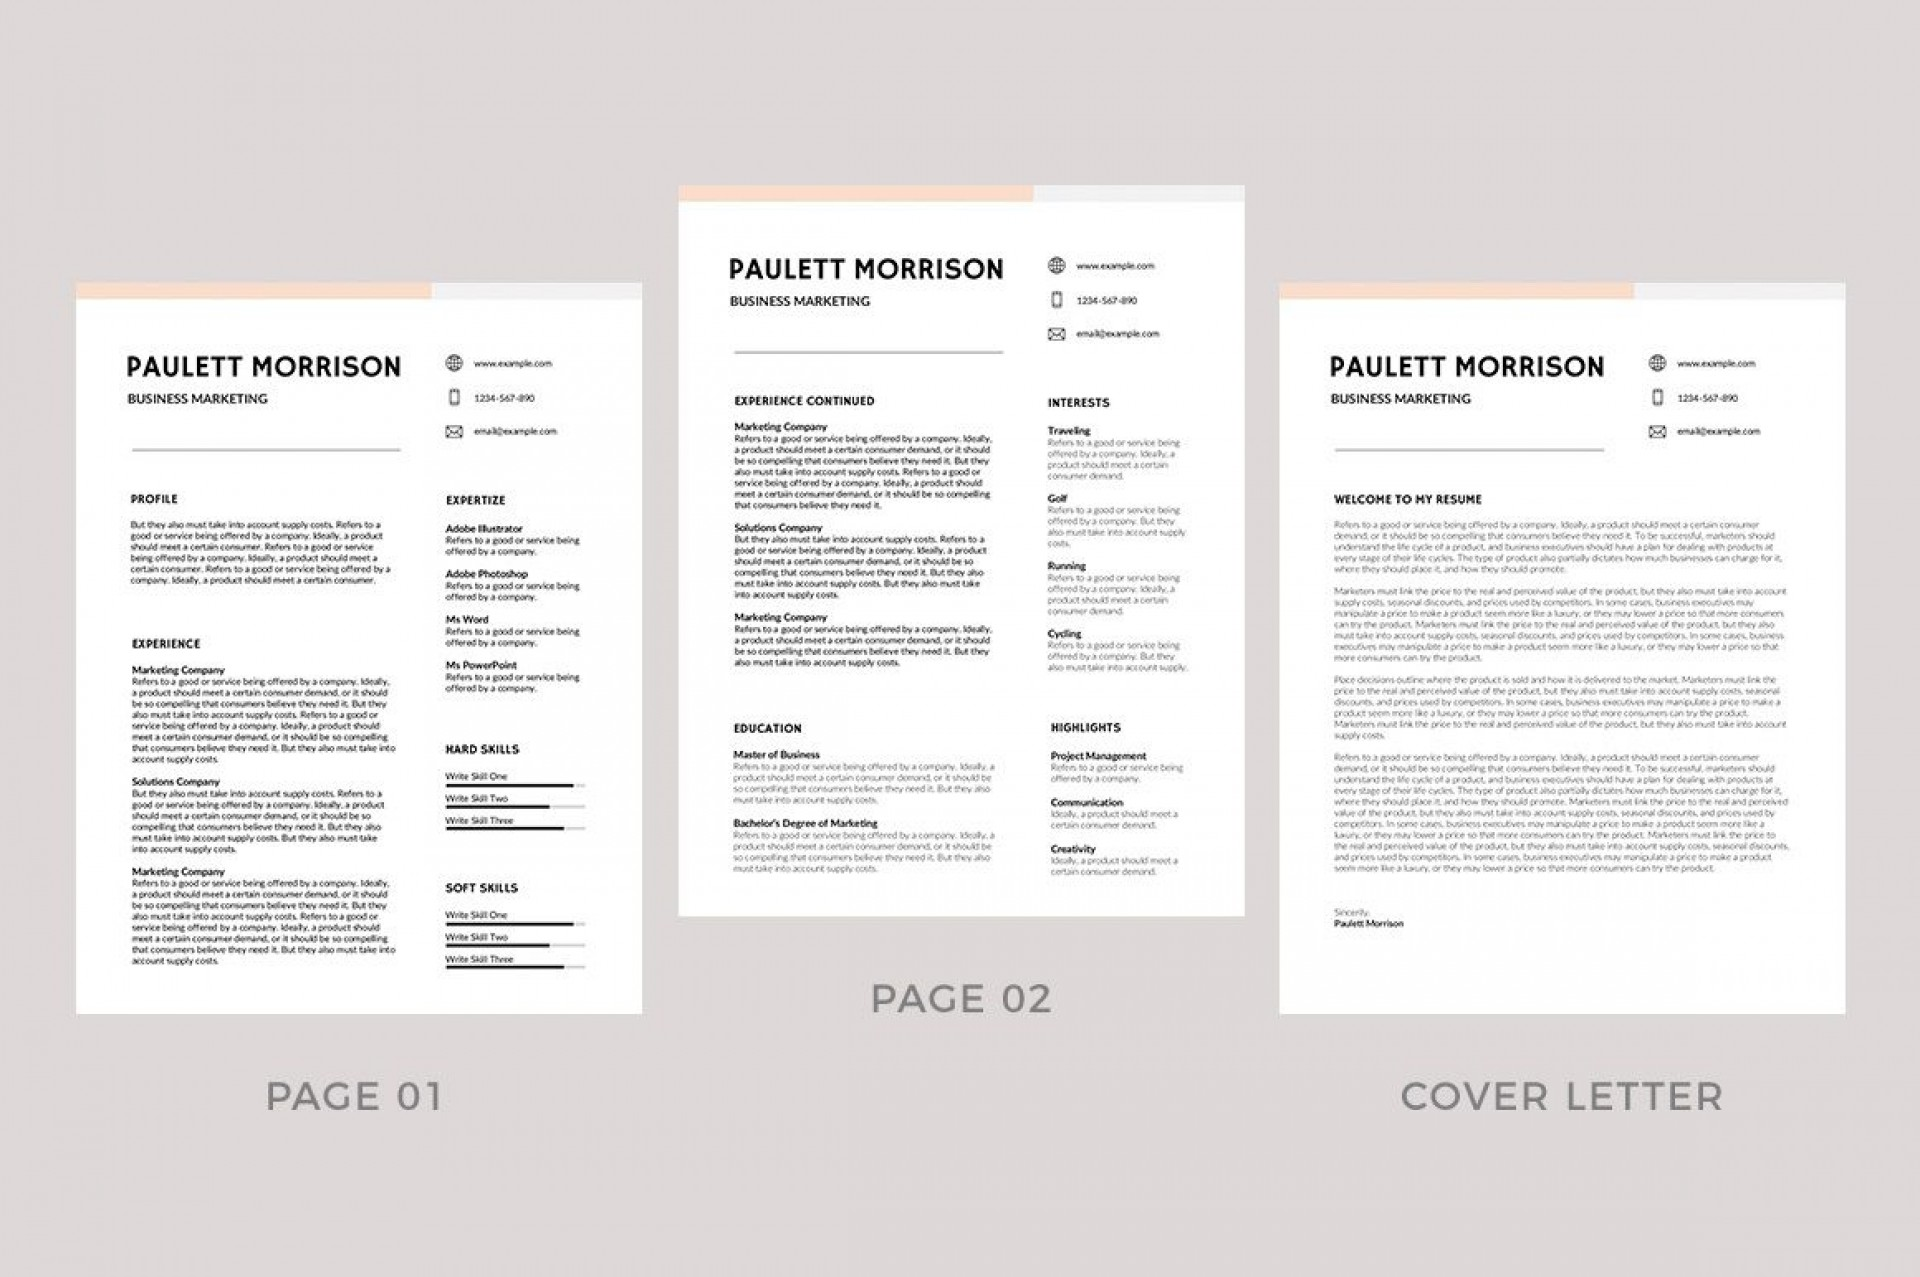 009 Wonderful Download Resume Template Word 2018 Example  Free1920